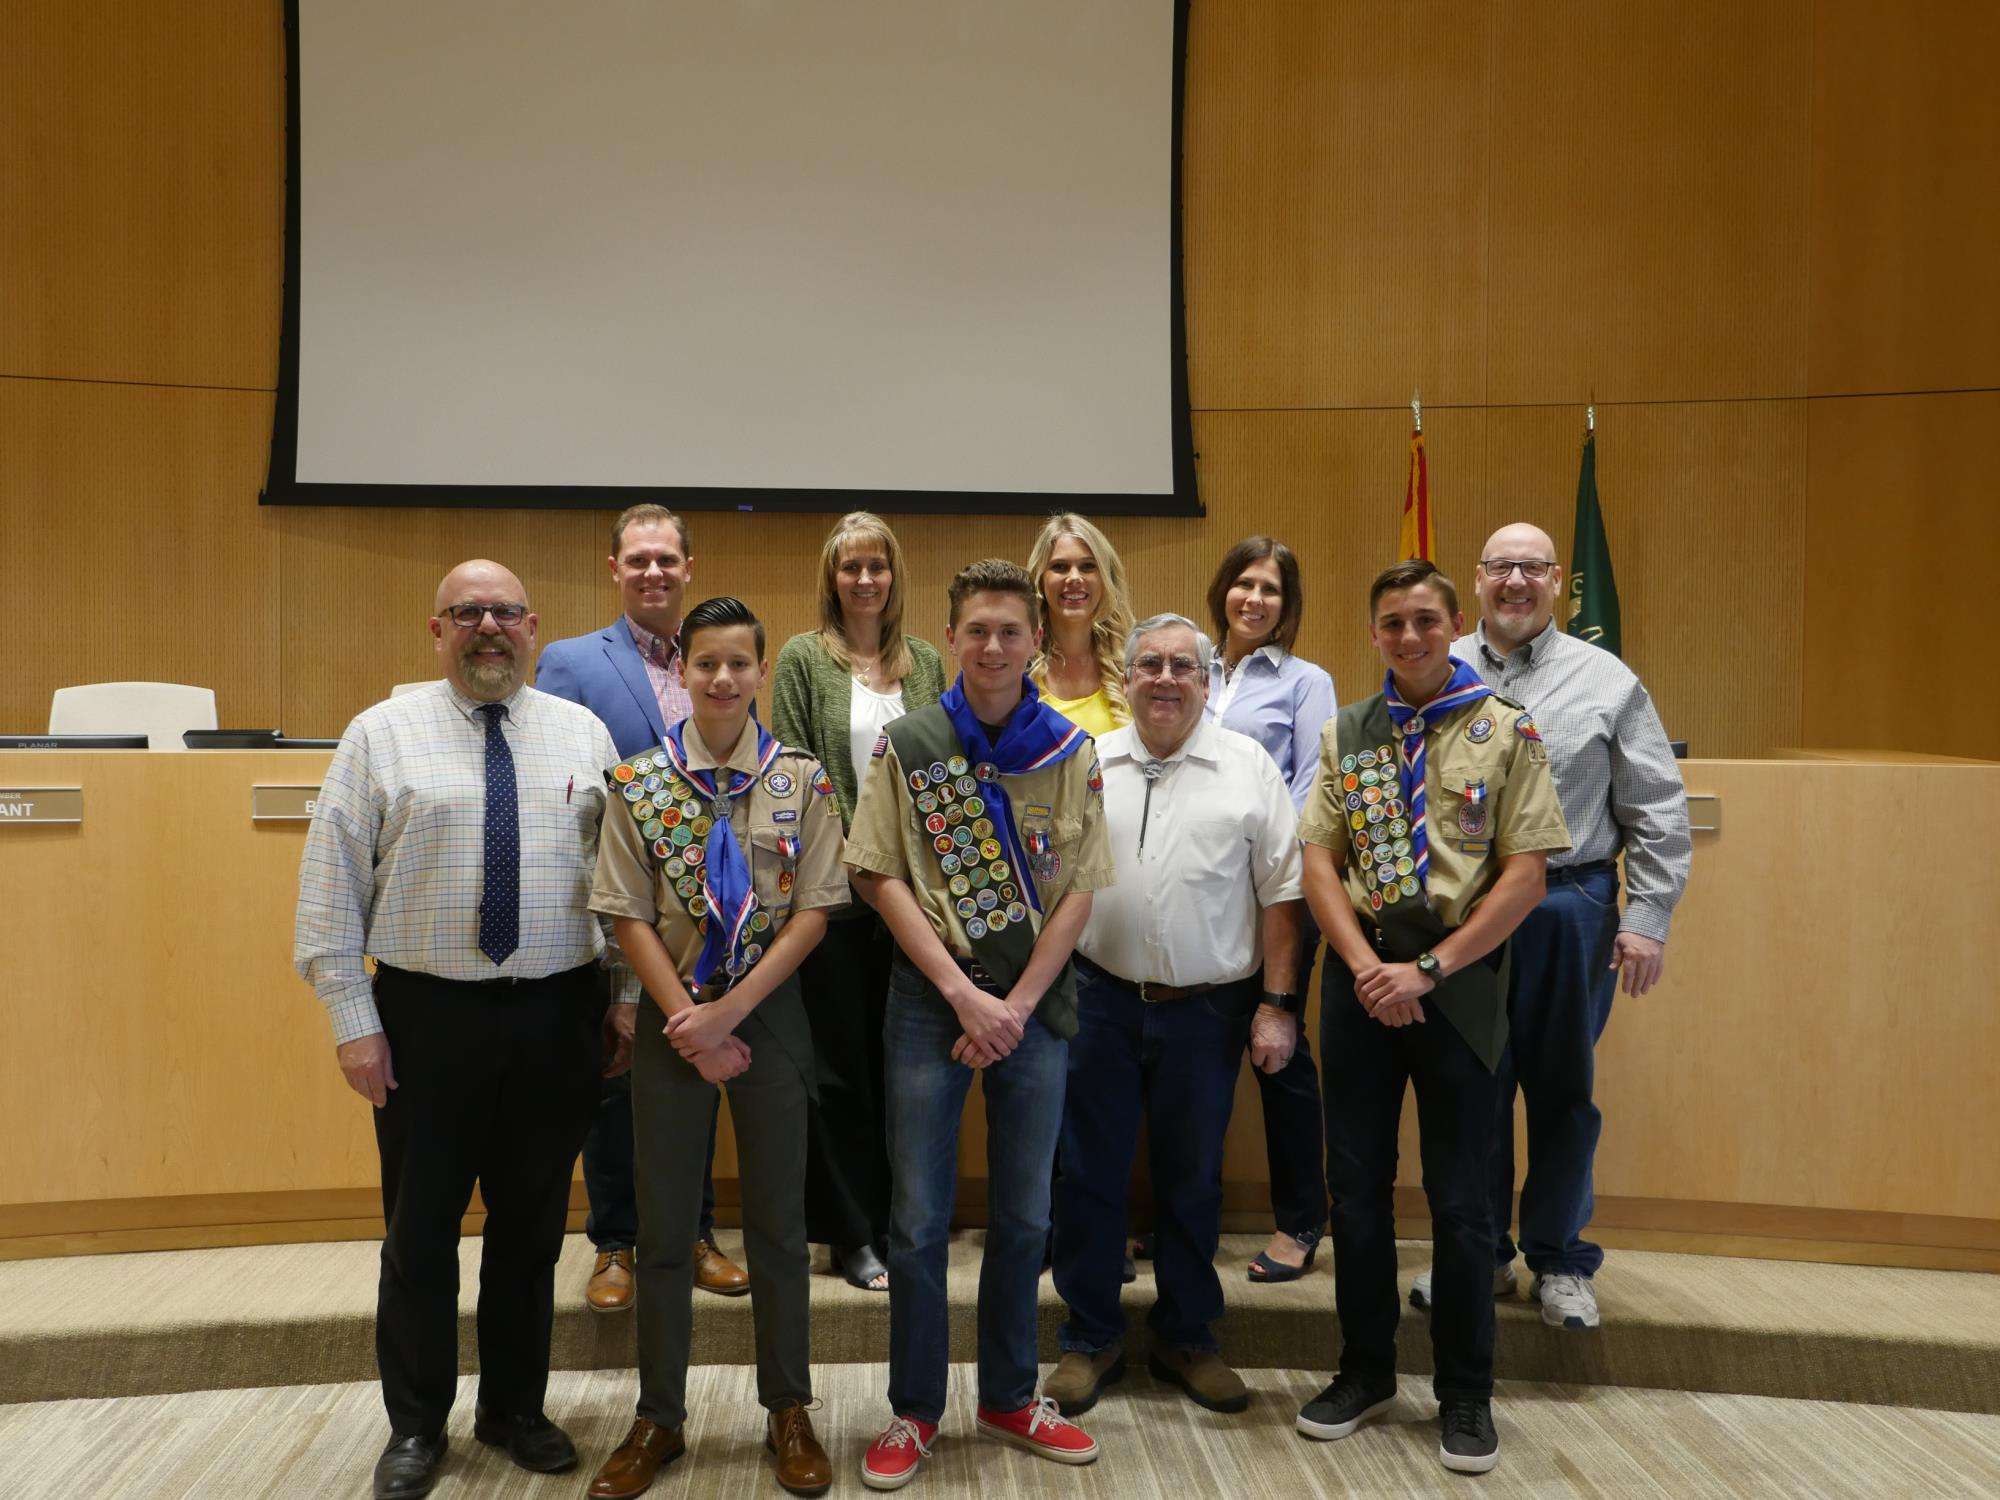 Mayor Barney and the Town Council with Eagle Scouts at the April 17 Town Council Meeting